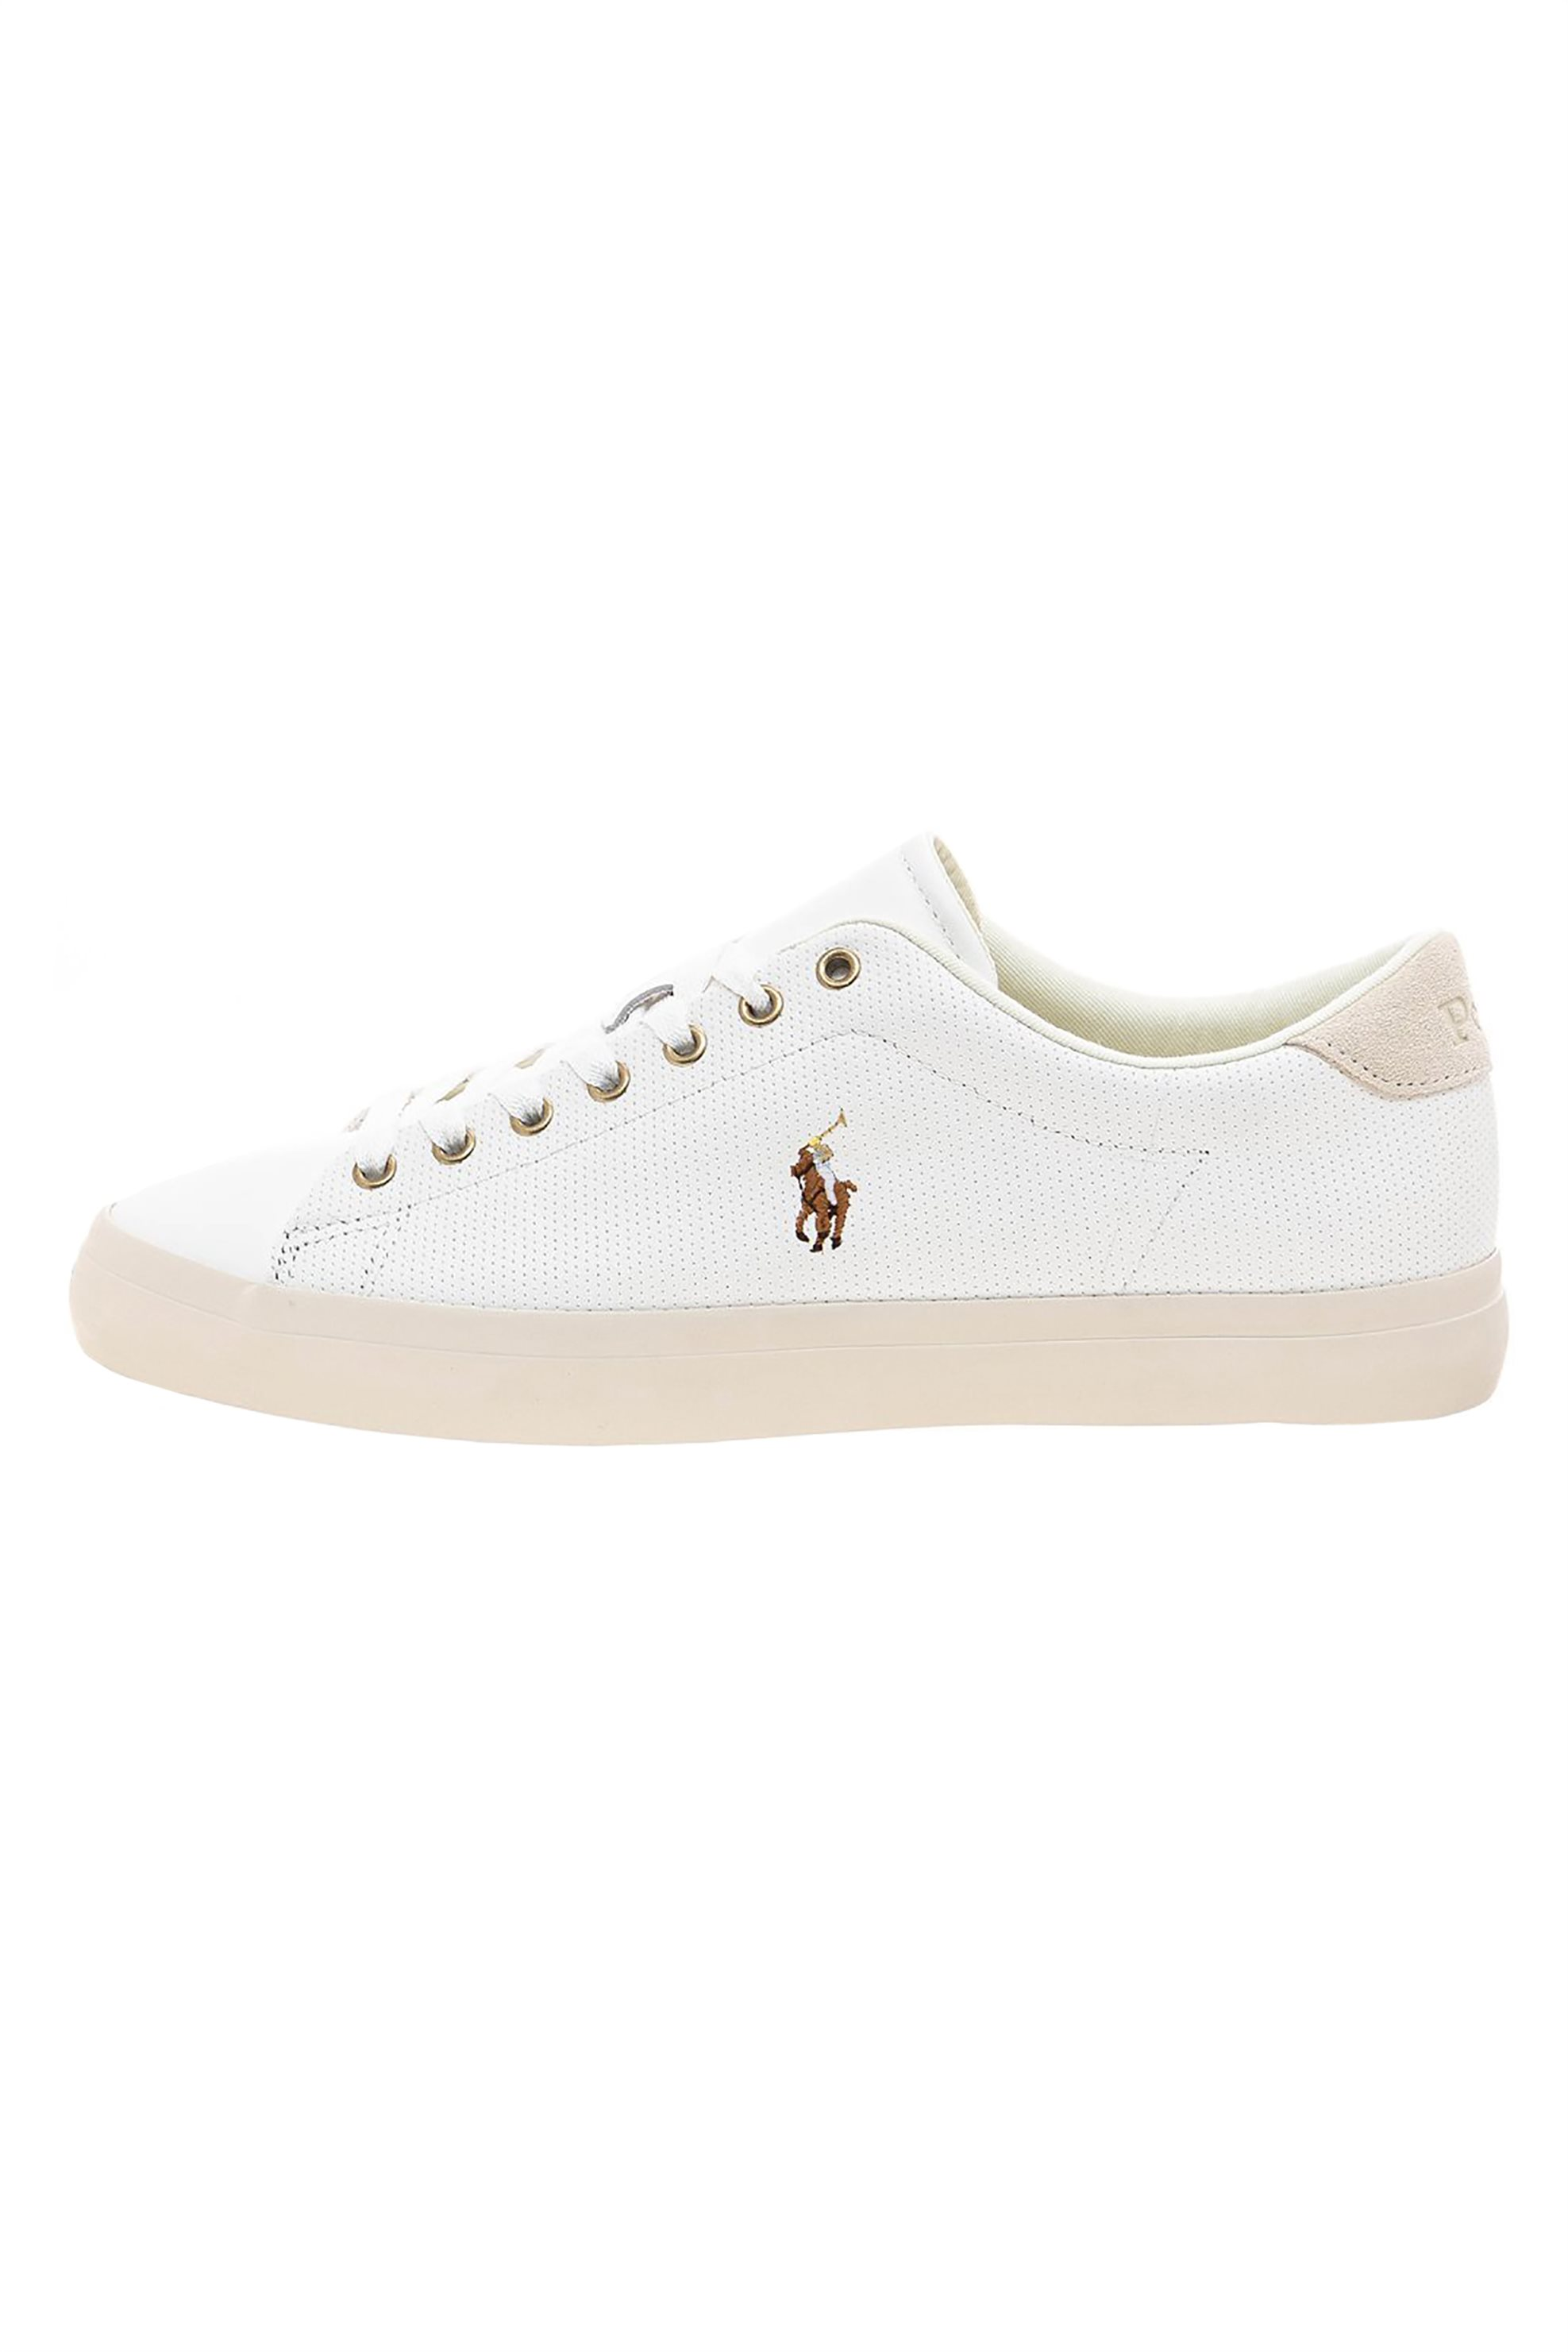 Polo Ralph Lauren ανδρικά δερμάτινα sneakers – 816785025004 – Λευκό